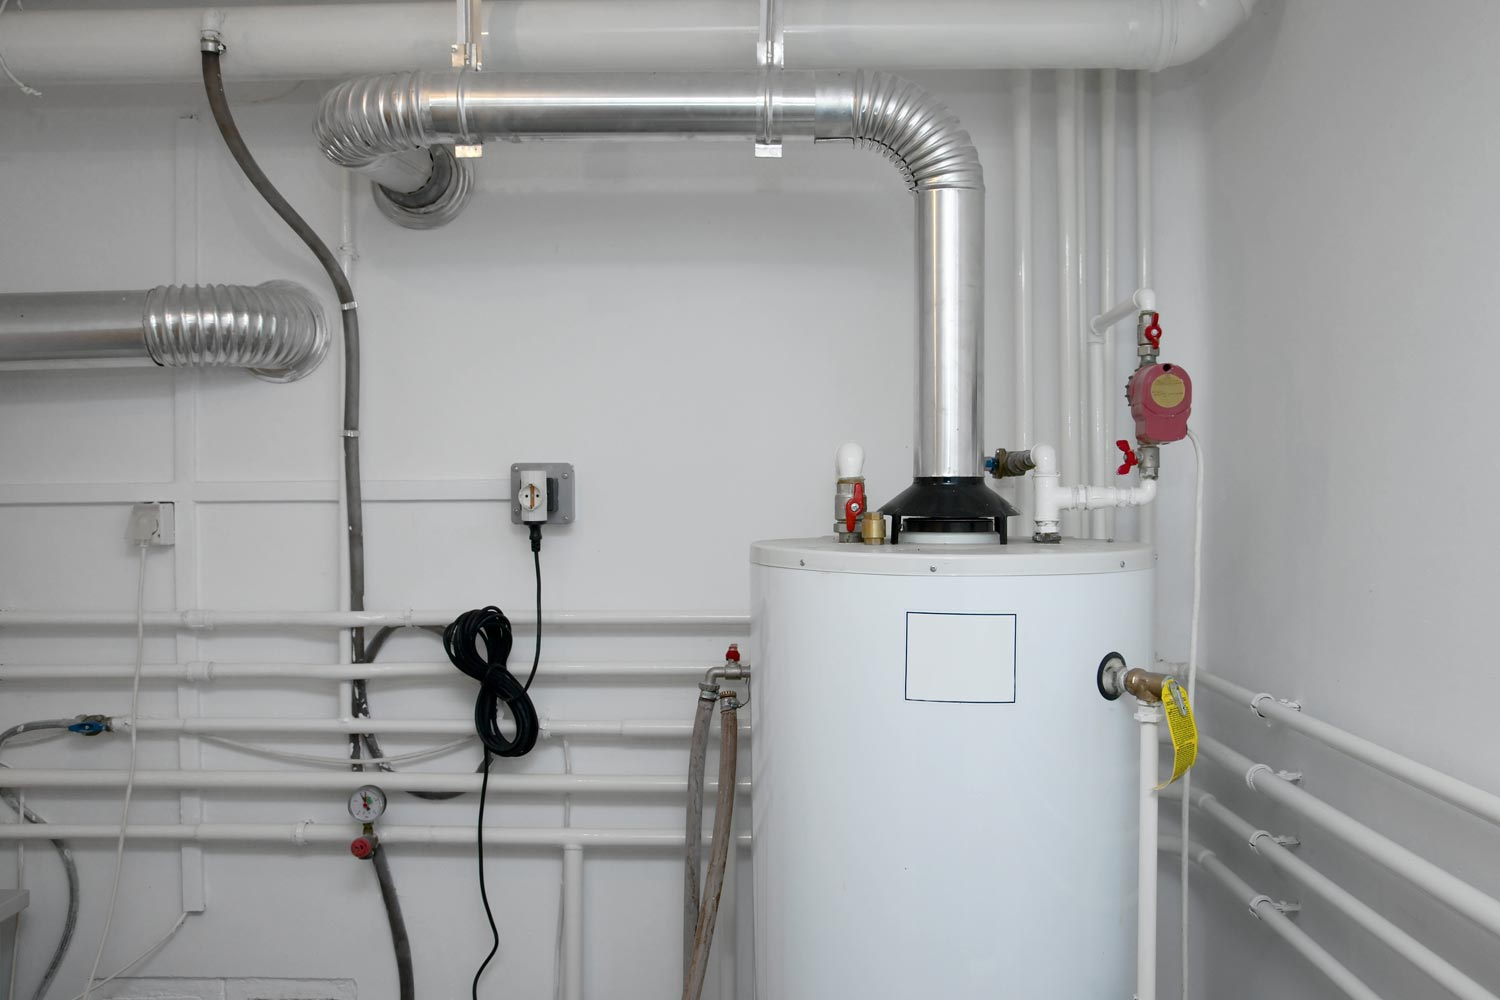 aaa-clean-furnace-cleaning-kitchener-waterloo-1